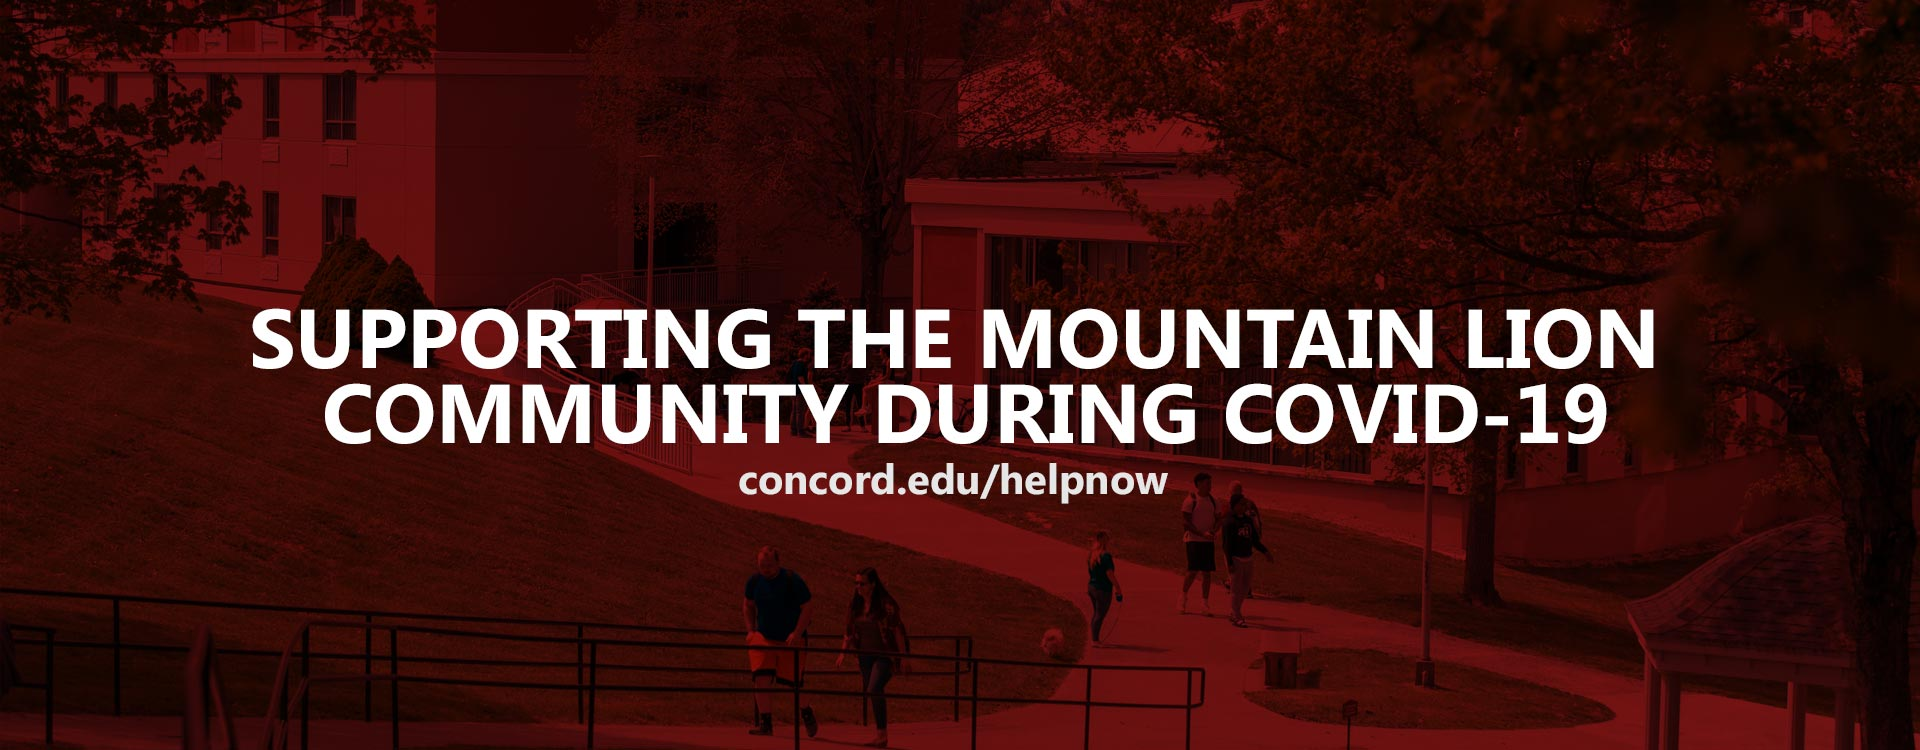 Supporting the Mountain Lion Community